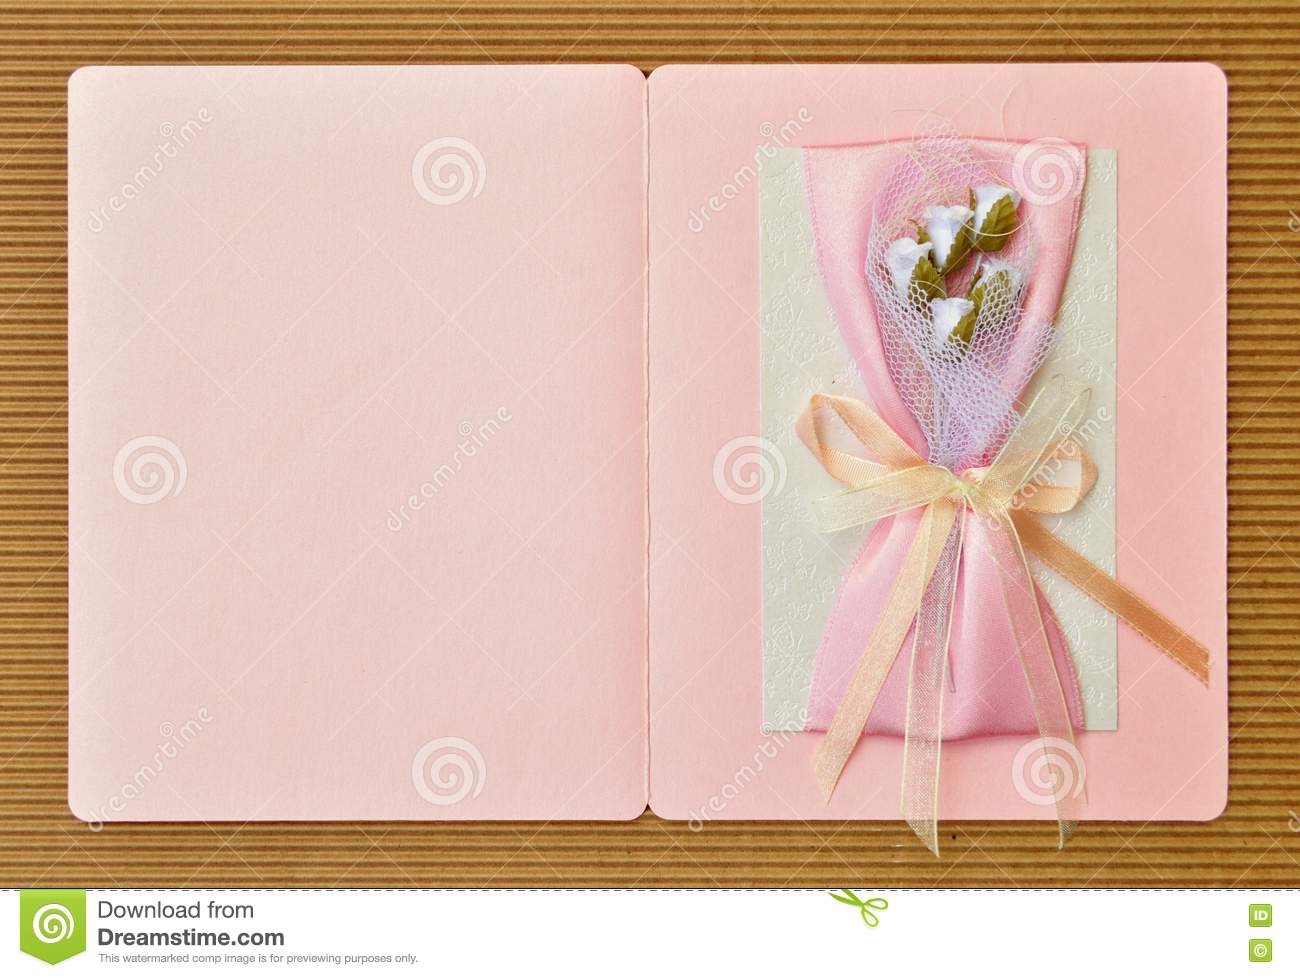 Paper Card Design Handmade Stock Photo Image Of Decor